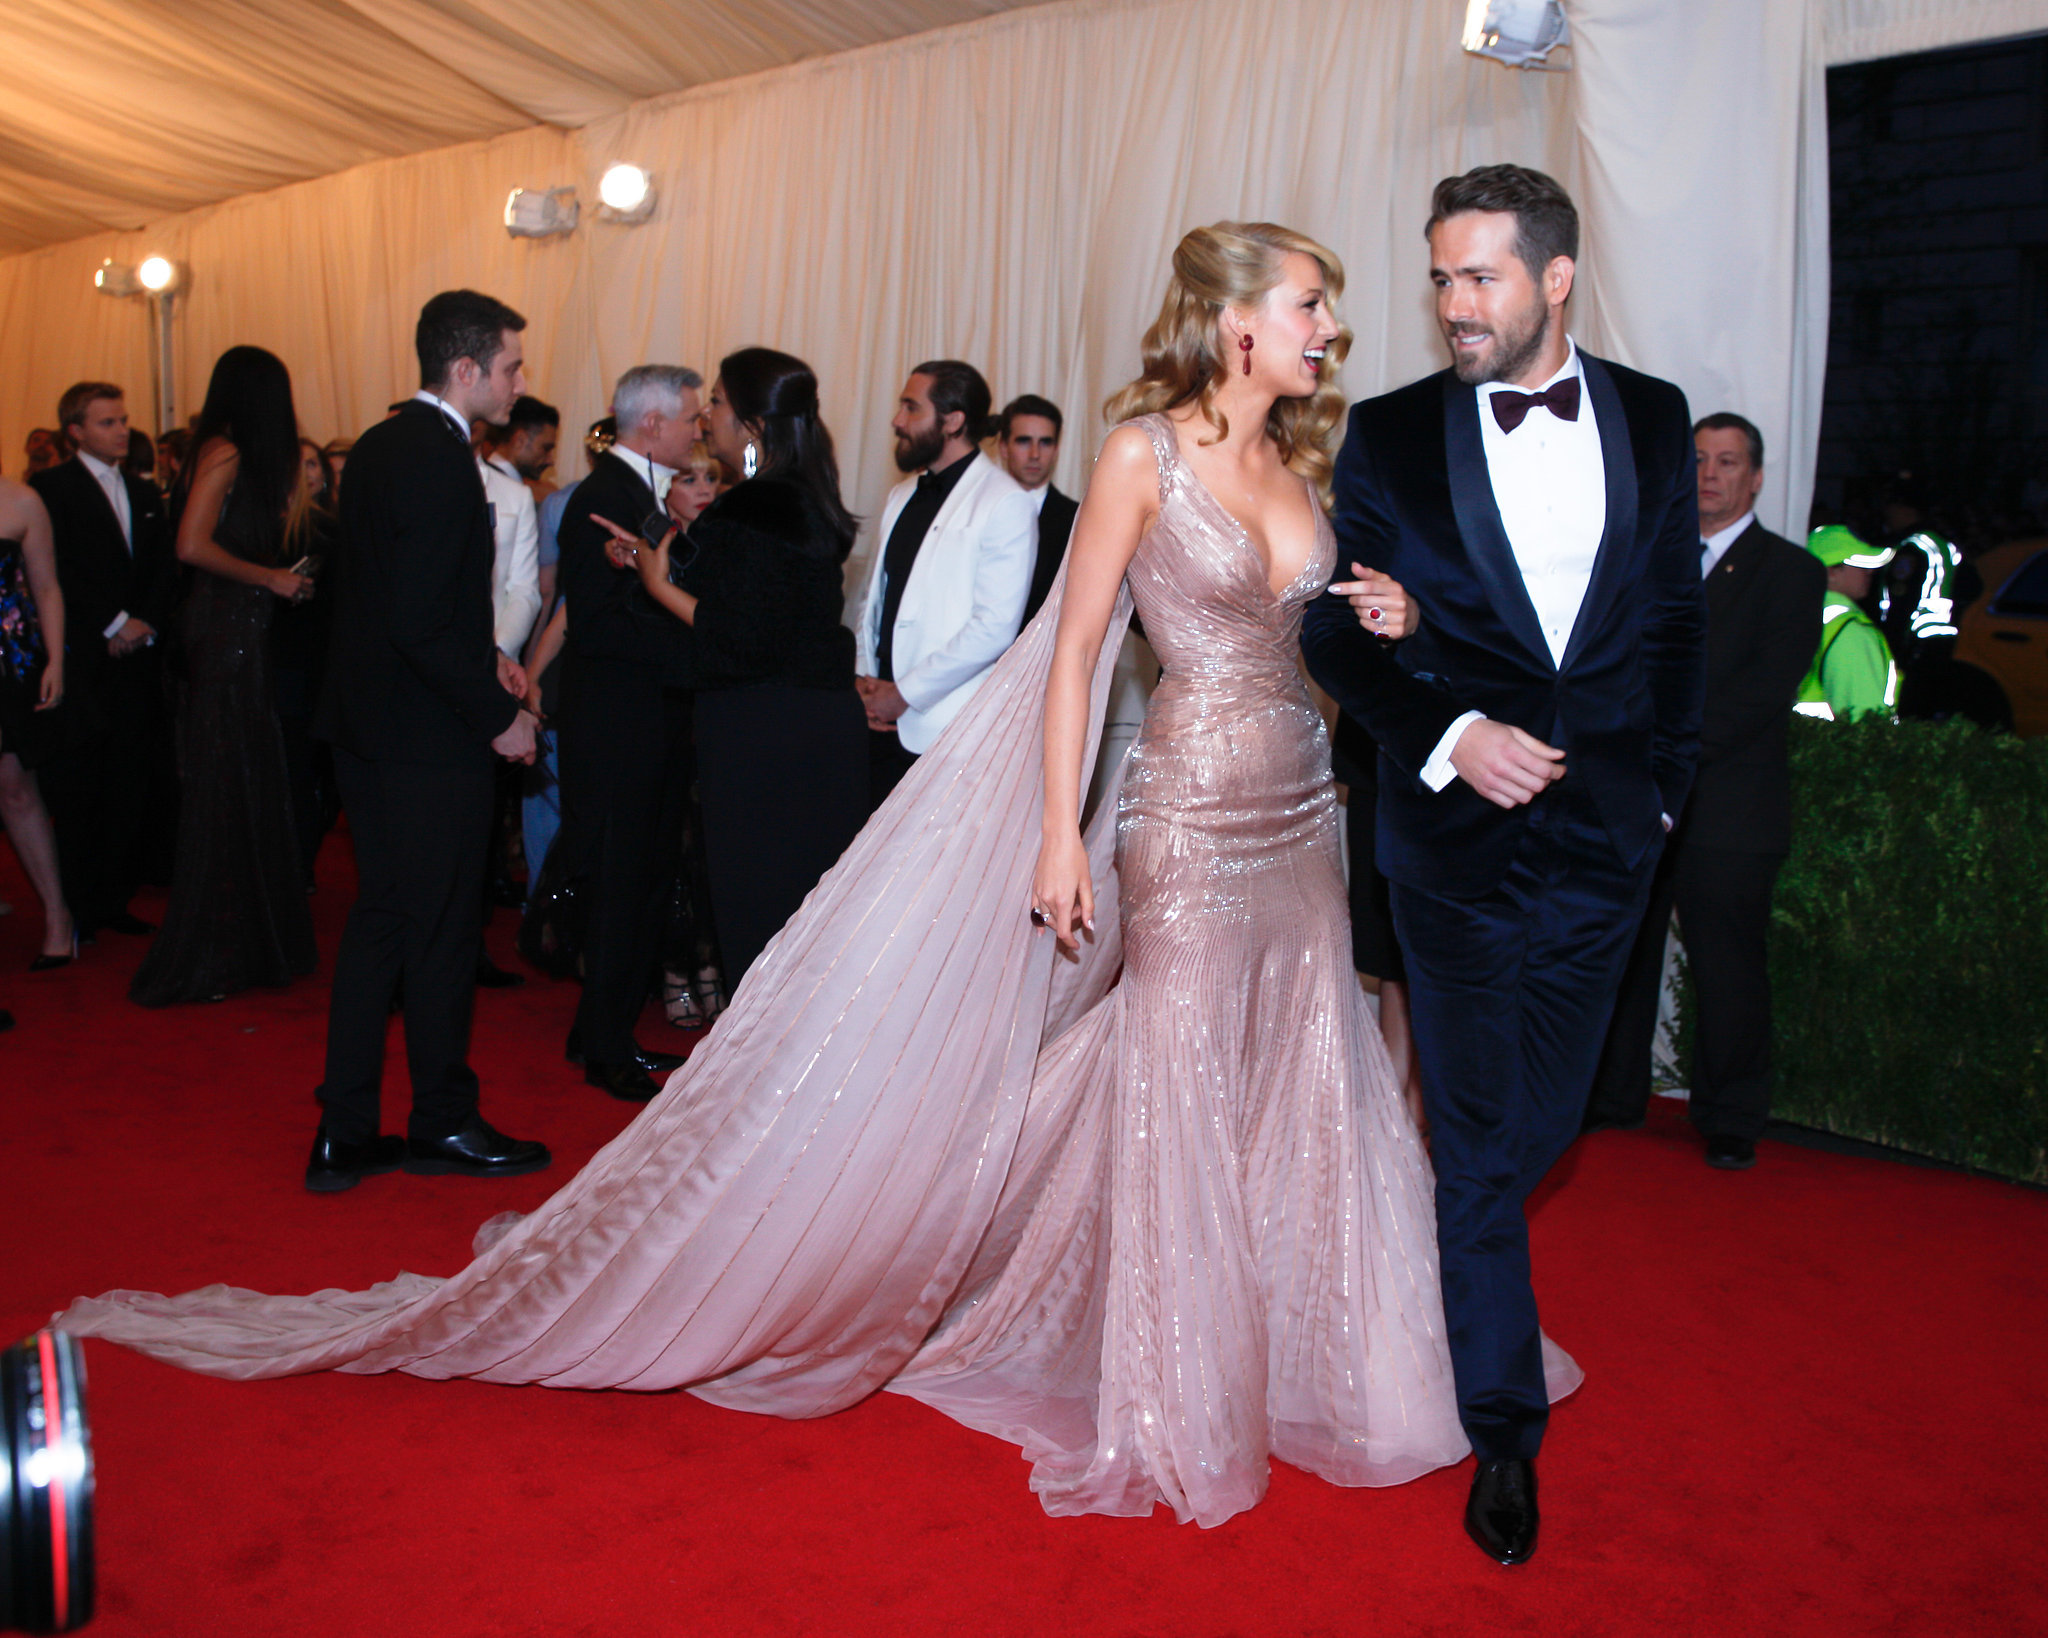 Jake Gyllenhaal mingled with guests while Blake and Ryan walked by.